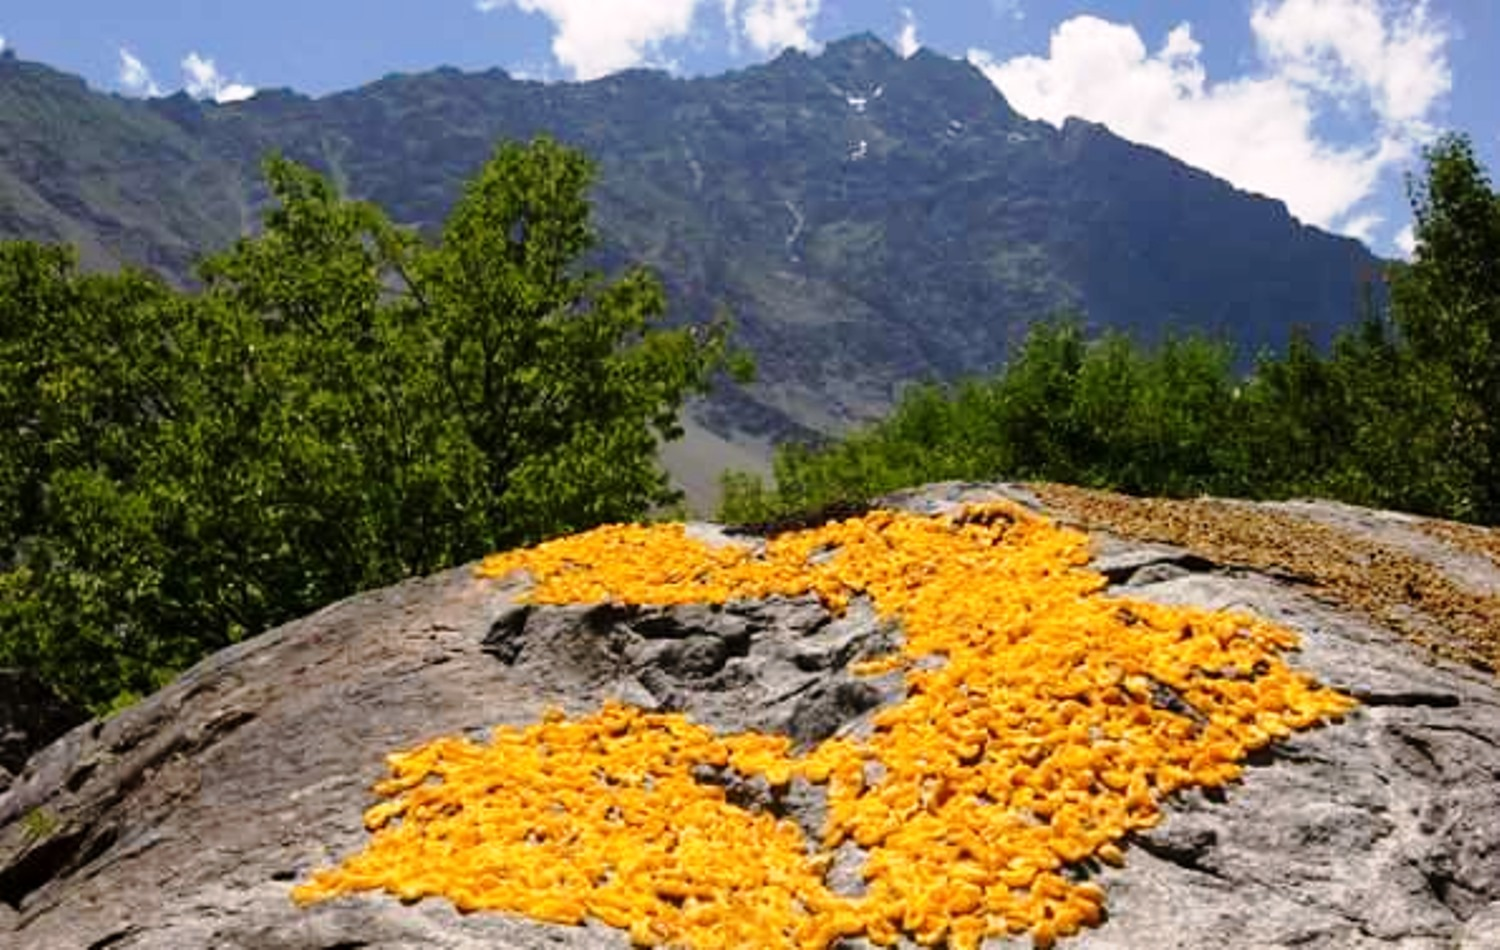 Given their abundance, apricots are a common sight across Hunza.